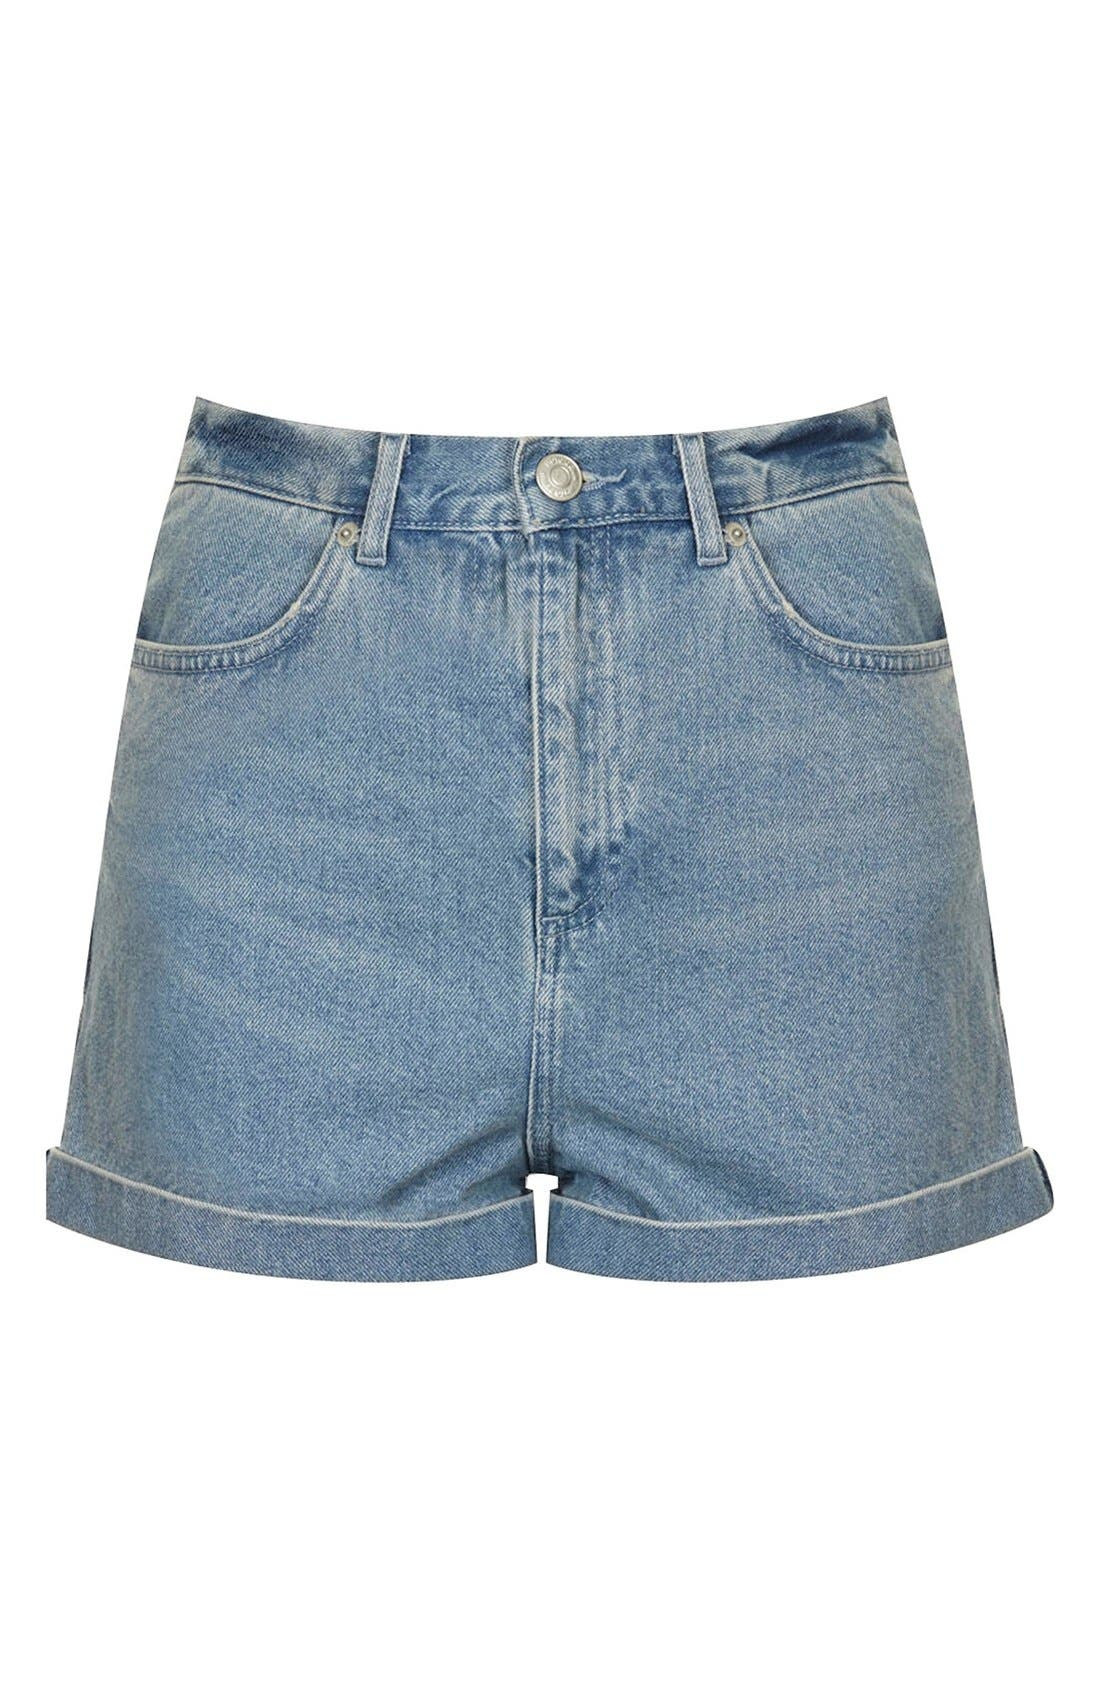 Alternate Image 3  - Topshop Moto 'Mom' High Rise Shorts (Light Denim)